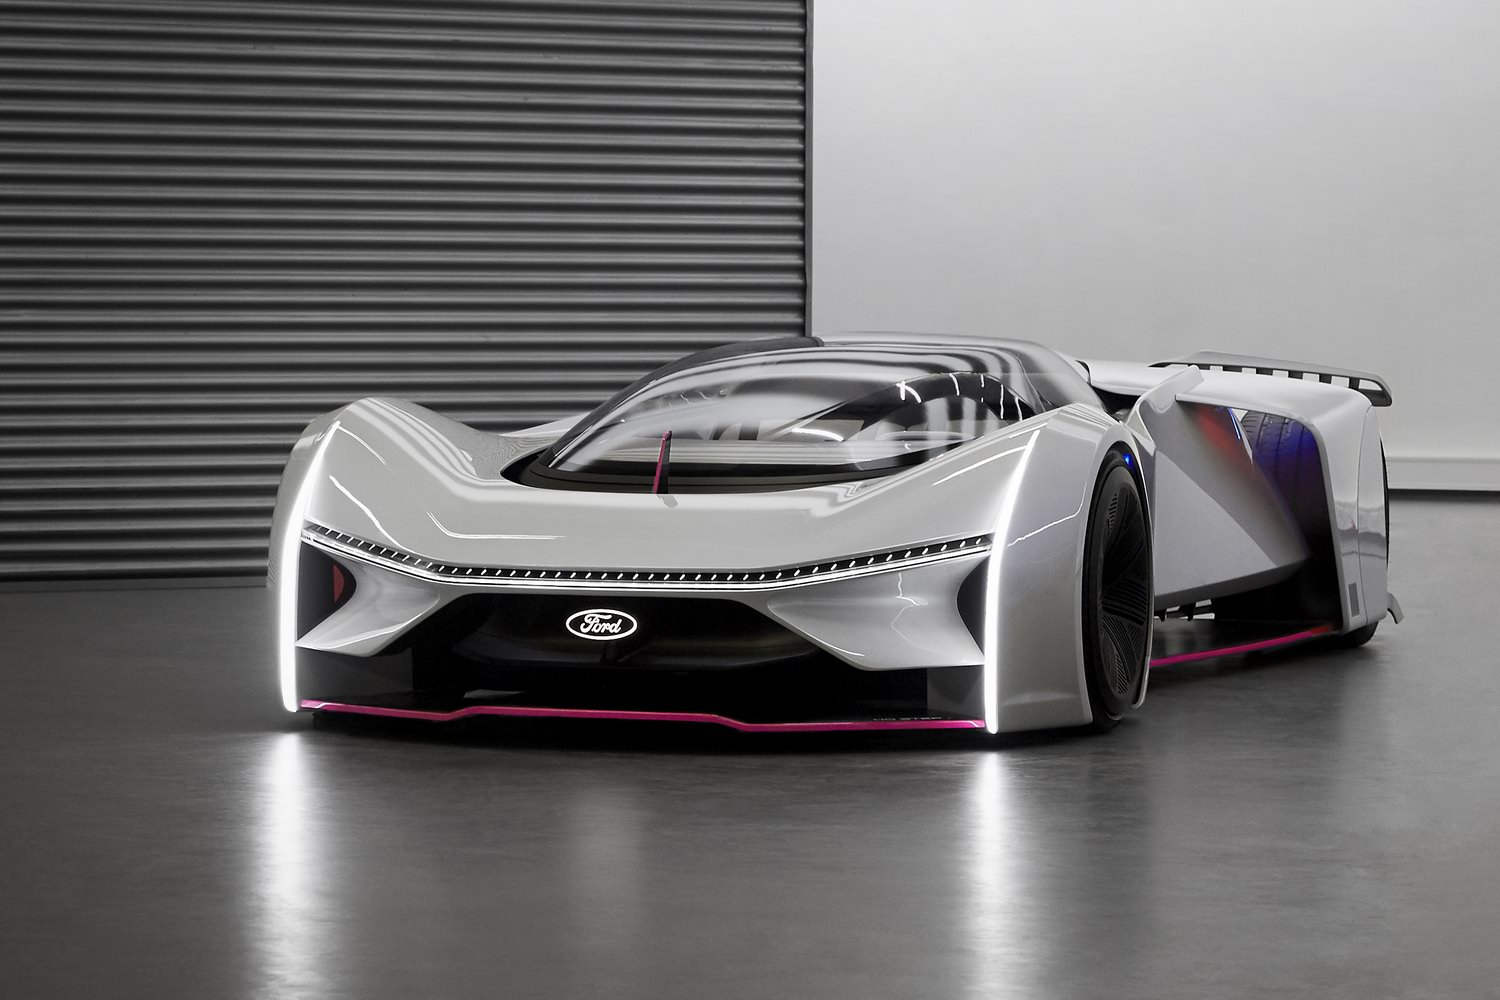 Car News | Ford's virtual racer becomes reality | CompleteCar.ie